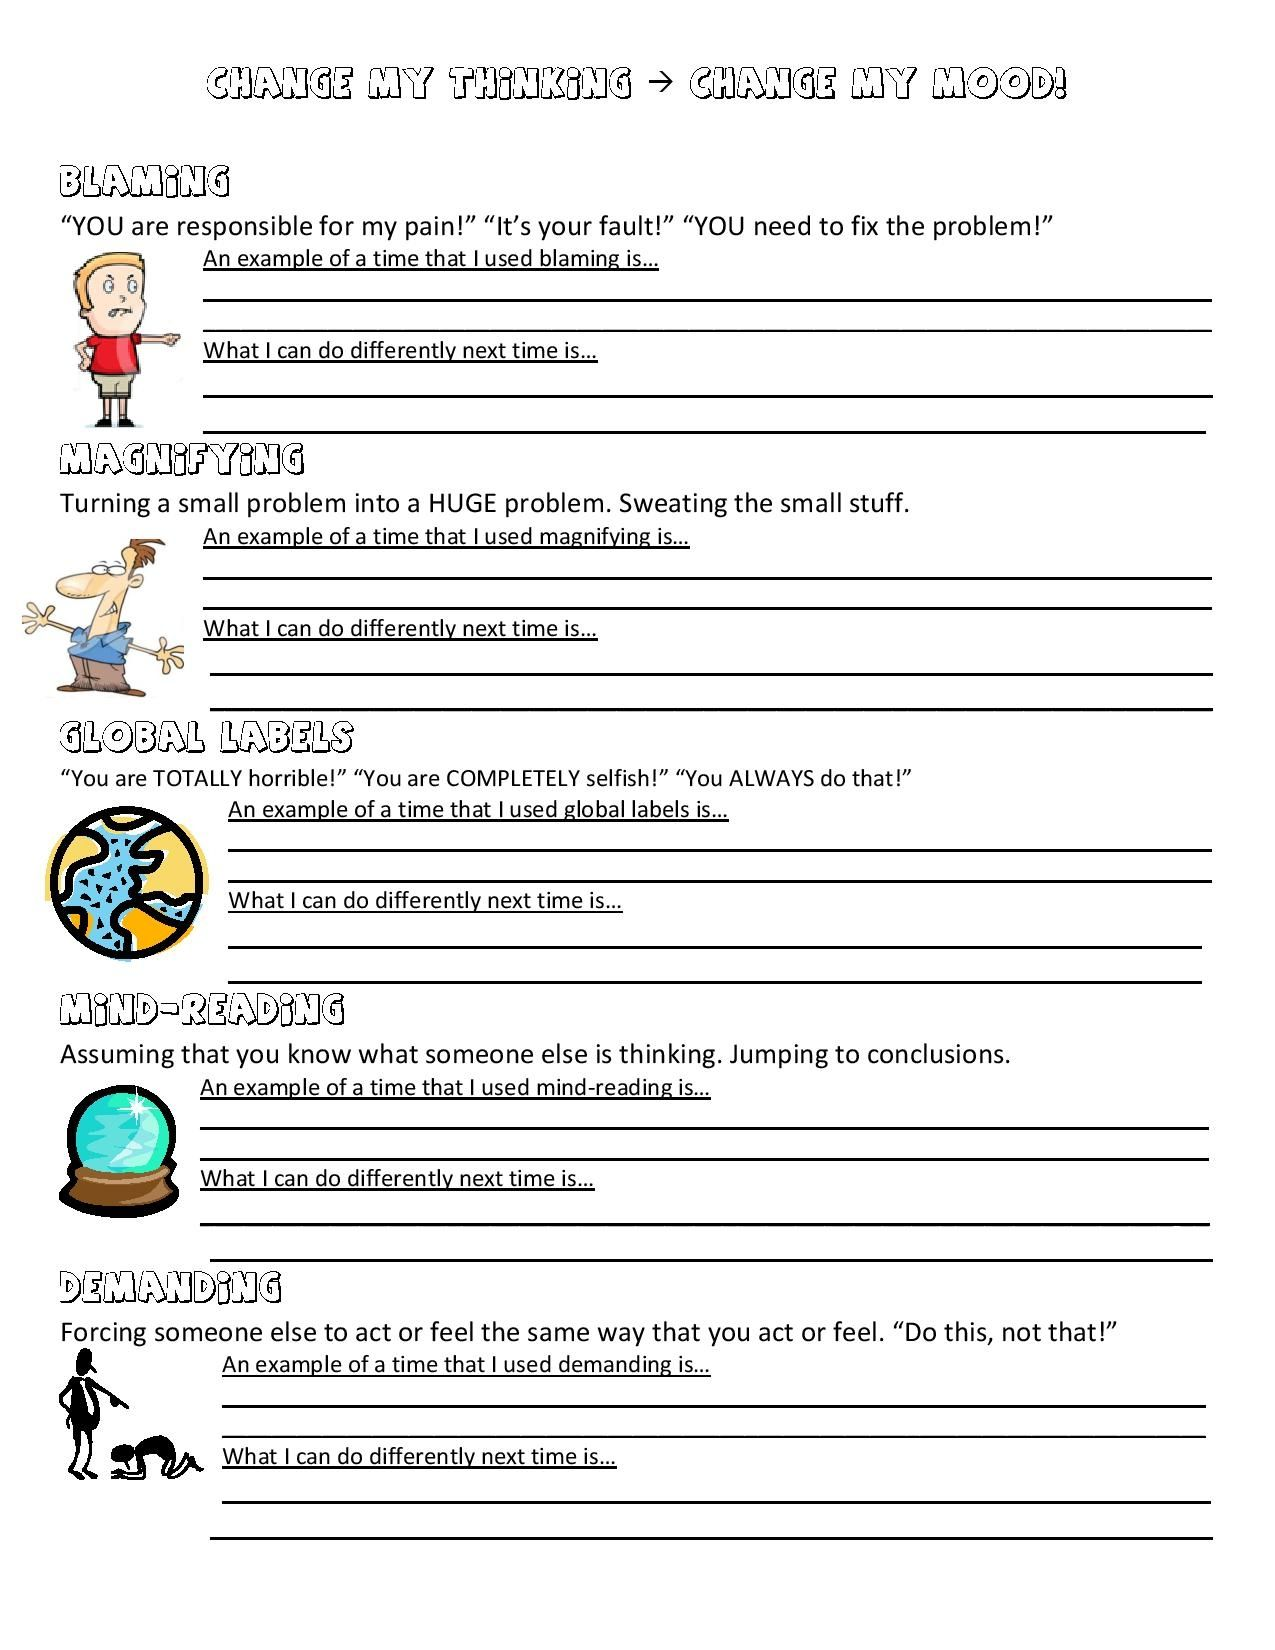 Printables Anger Management For Kids Worksheets 1000 images about helpful worksheets on pinterest depression anxiety and asperger